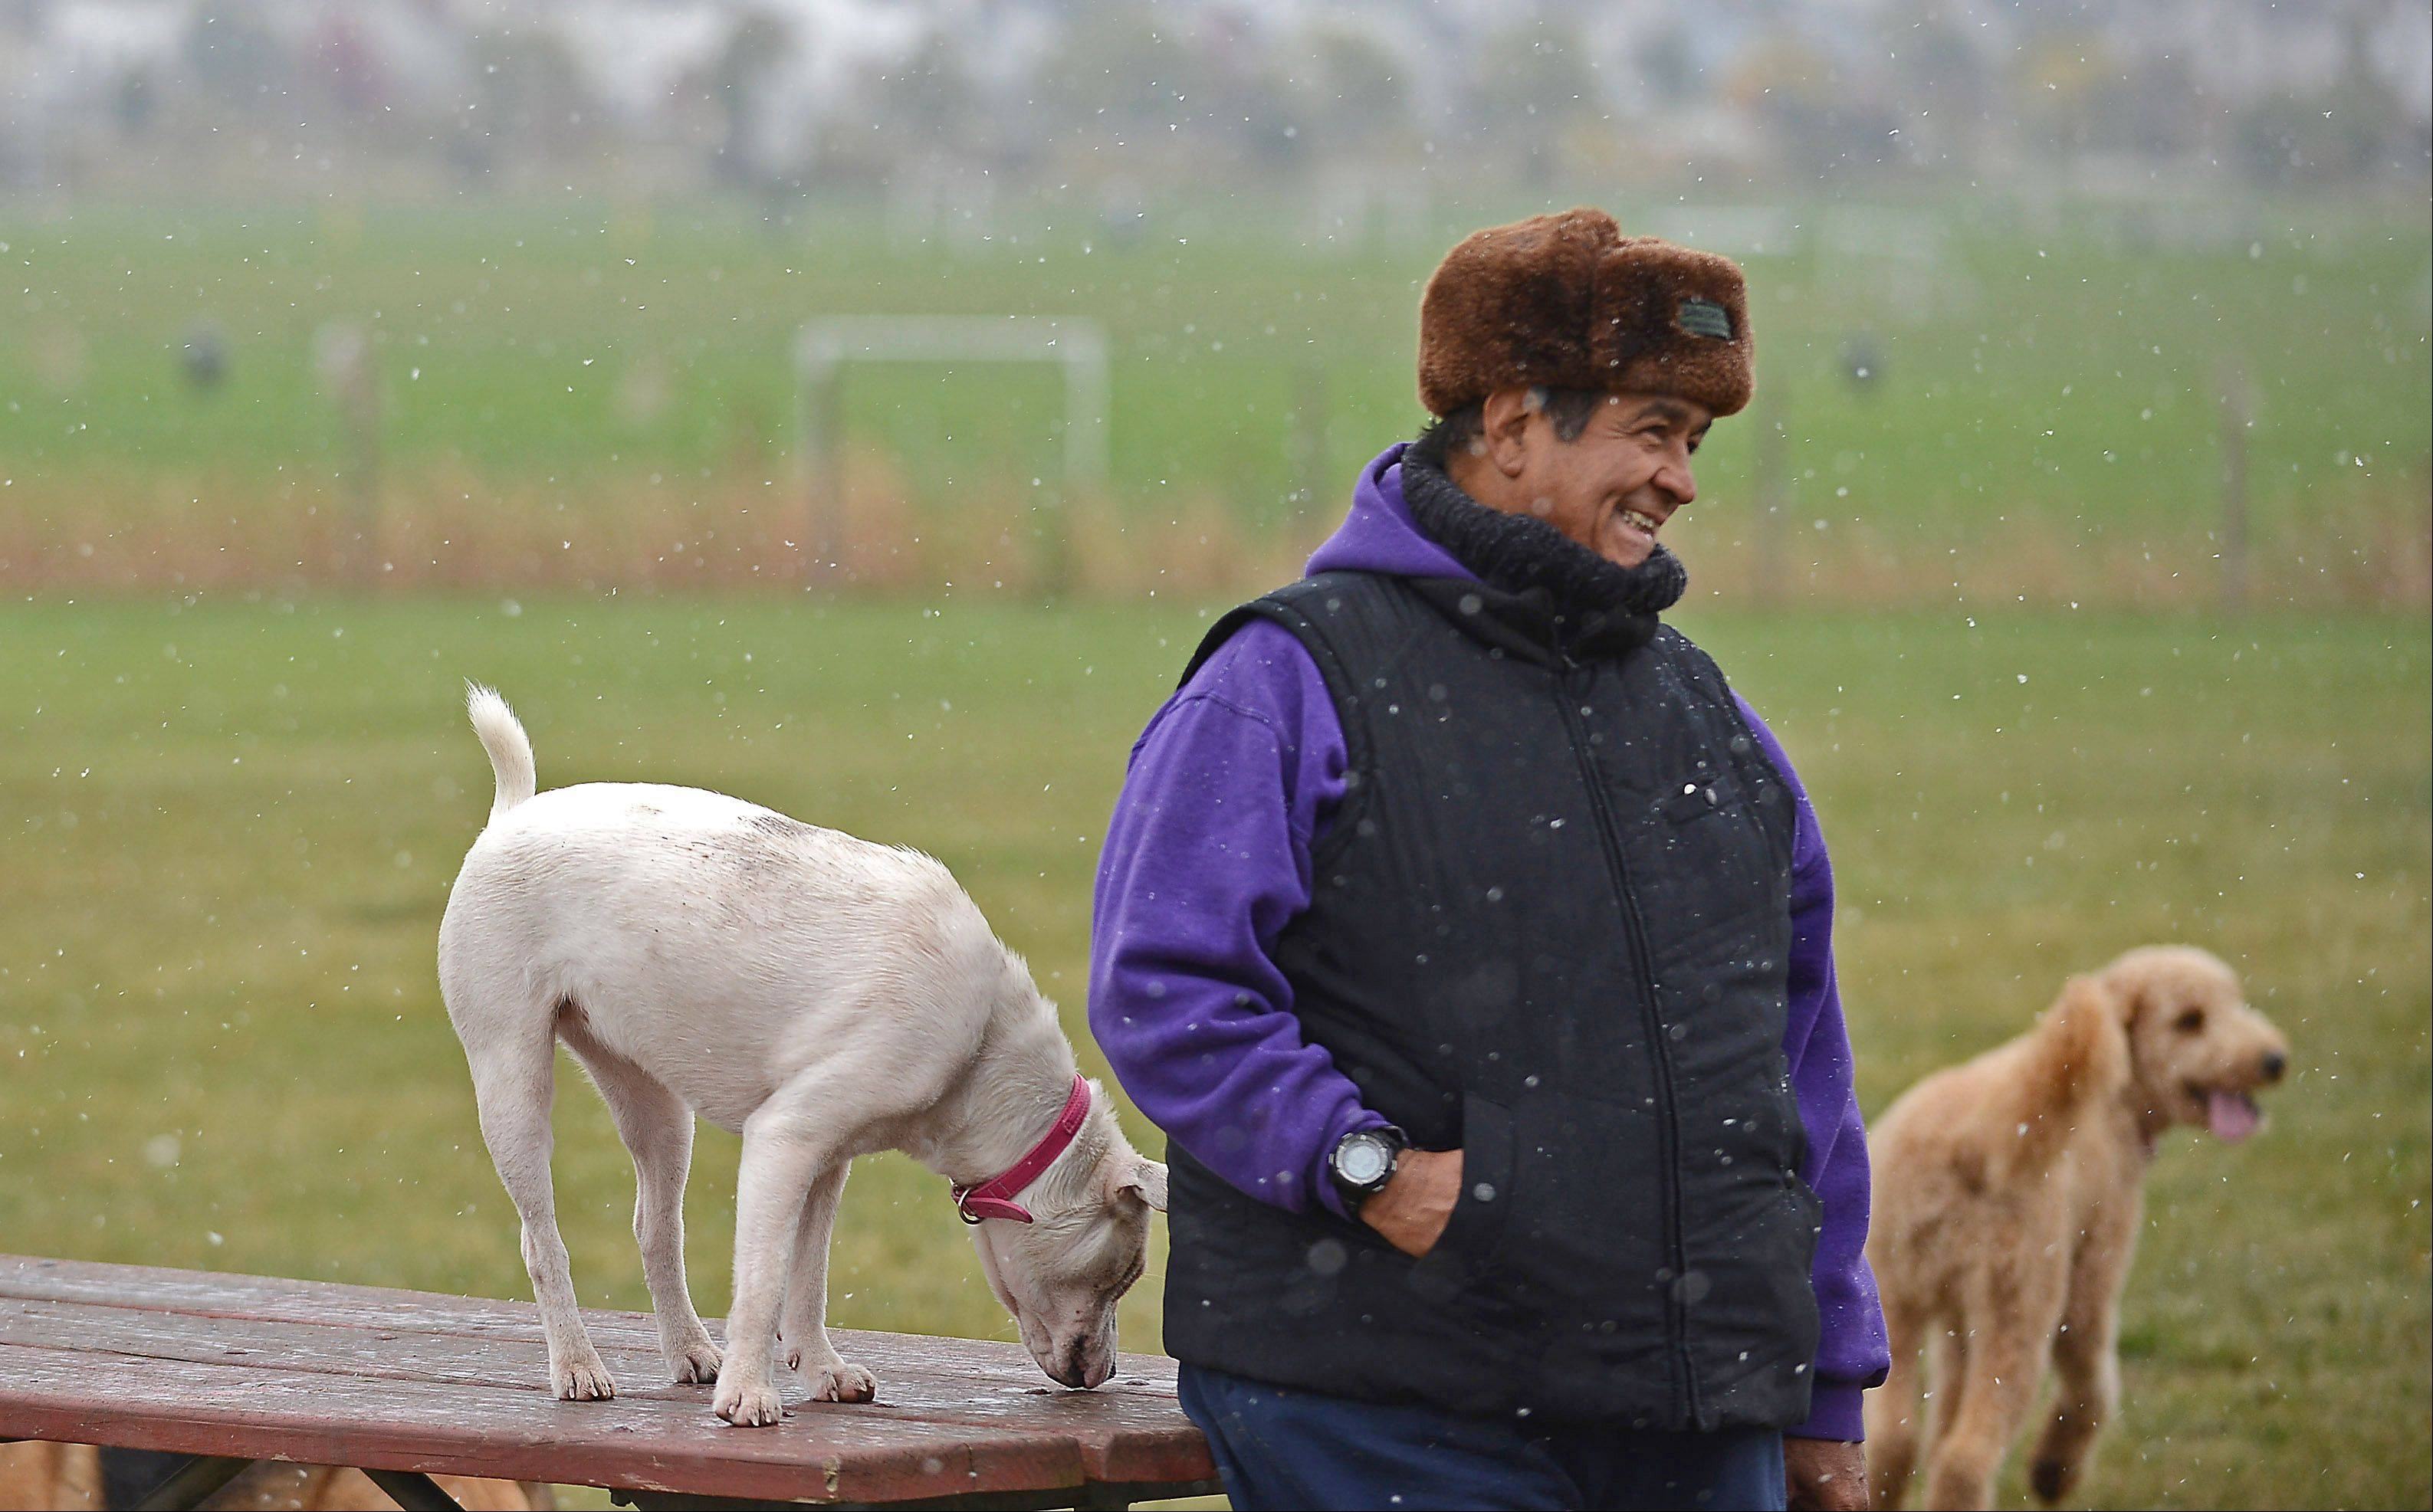 Manny Galvan, of St. Charles, smiles while talking to some of the other regulars at the dog park as the snow falls at James O. Breen Community Park Tuesday. He brought his dog Mimsy, not pictured, along.